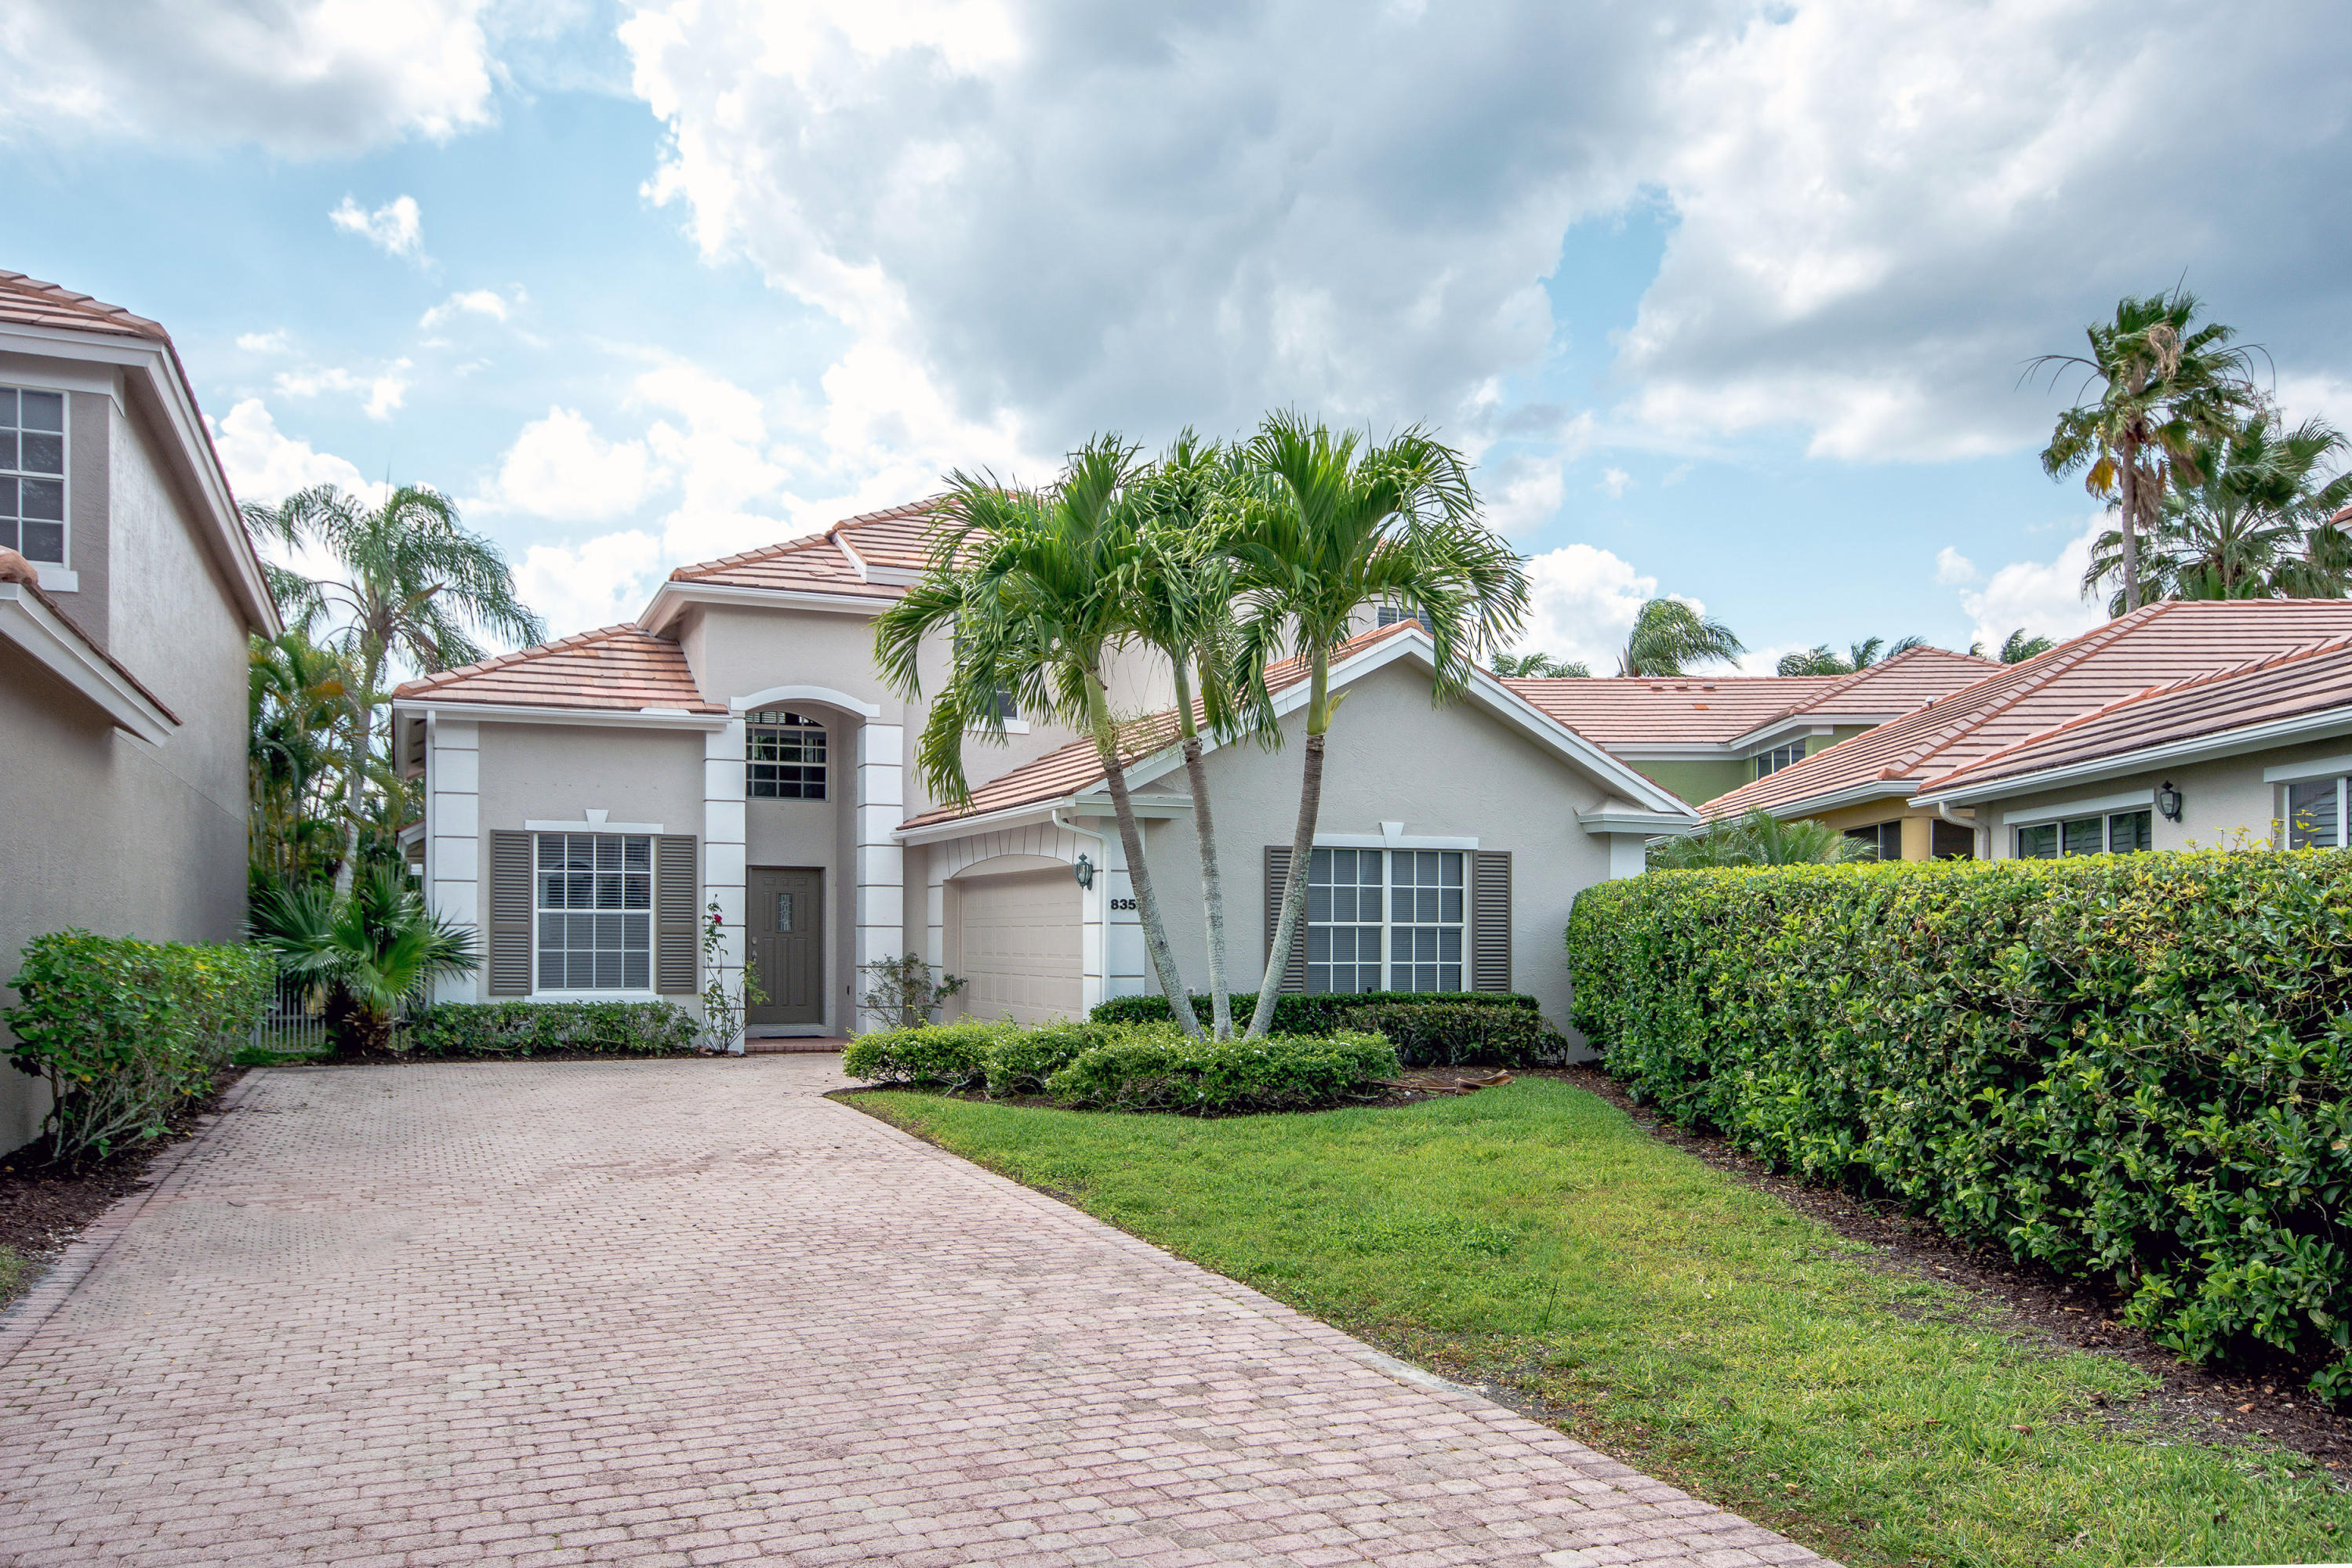 Details for 8353 Heritage Club Drive, West Palm Beach, FL 33412